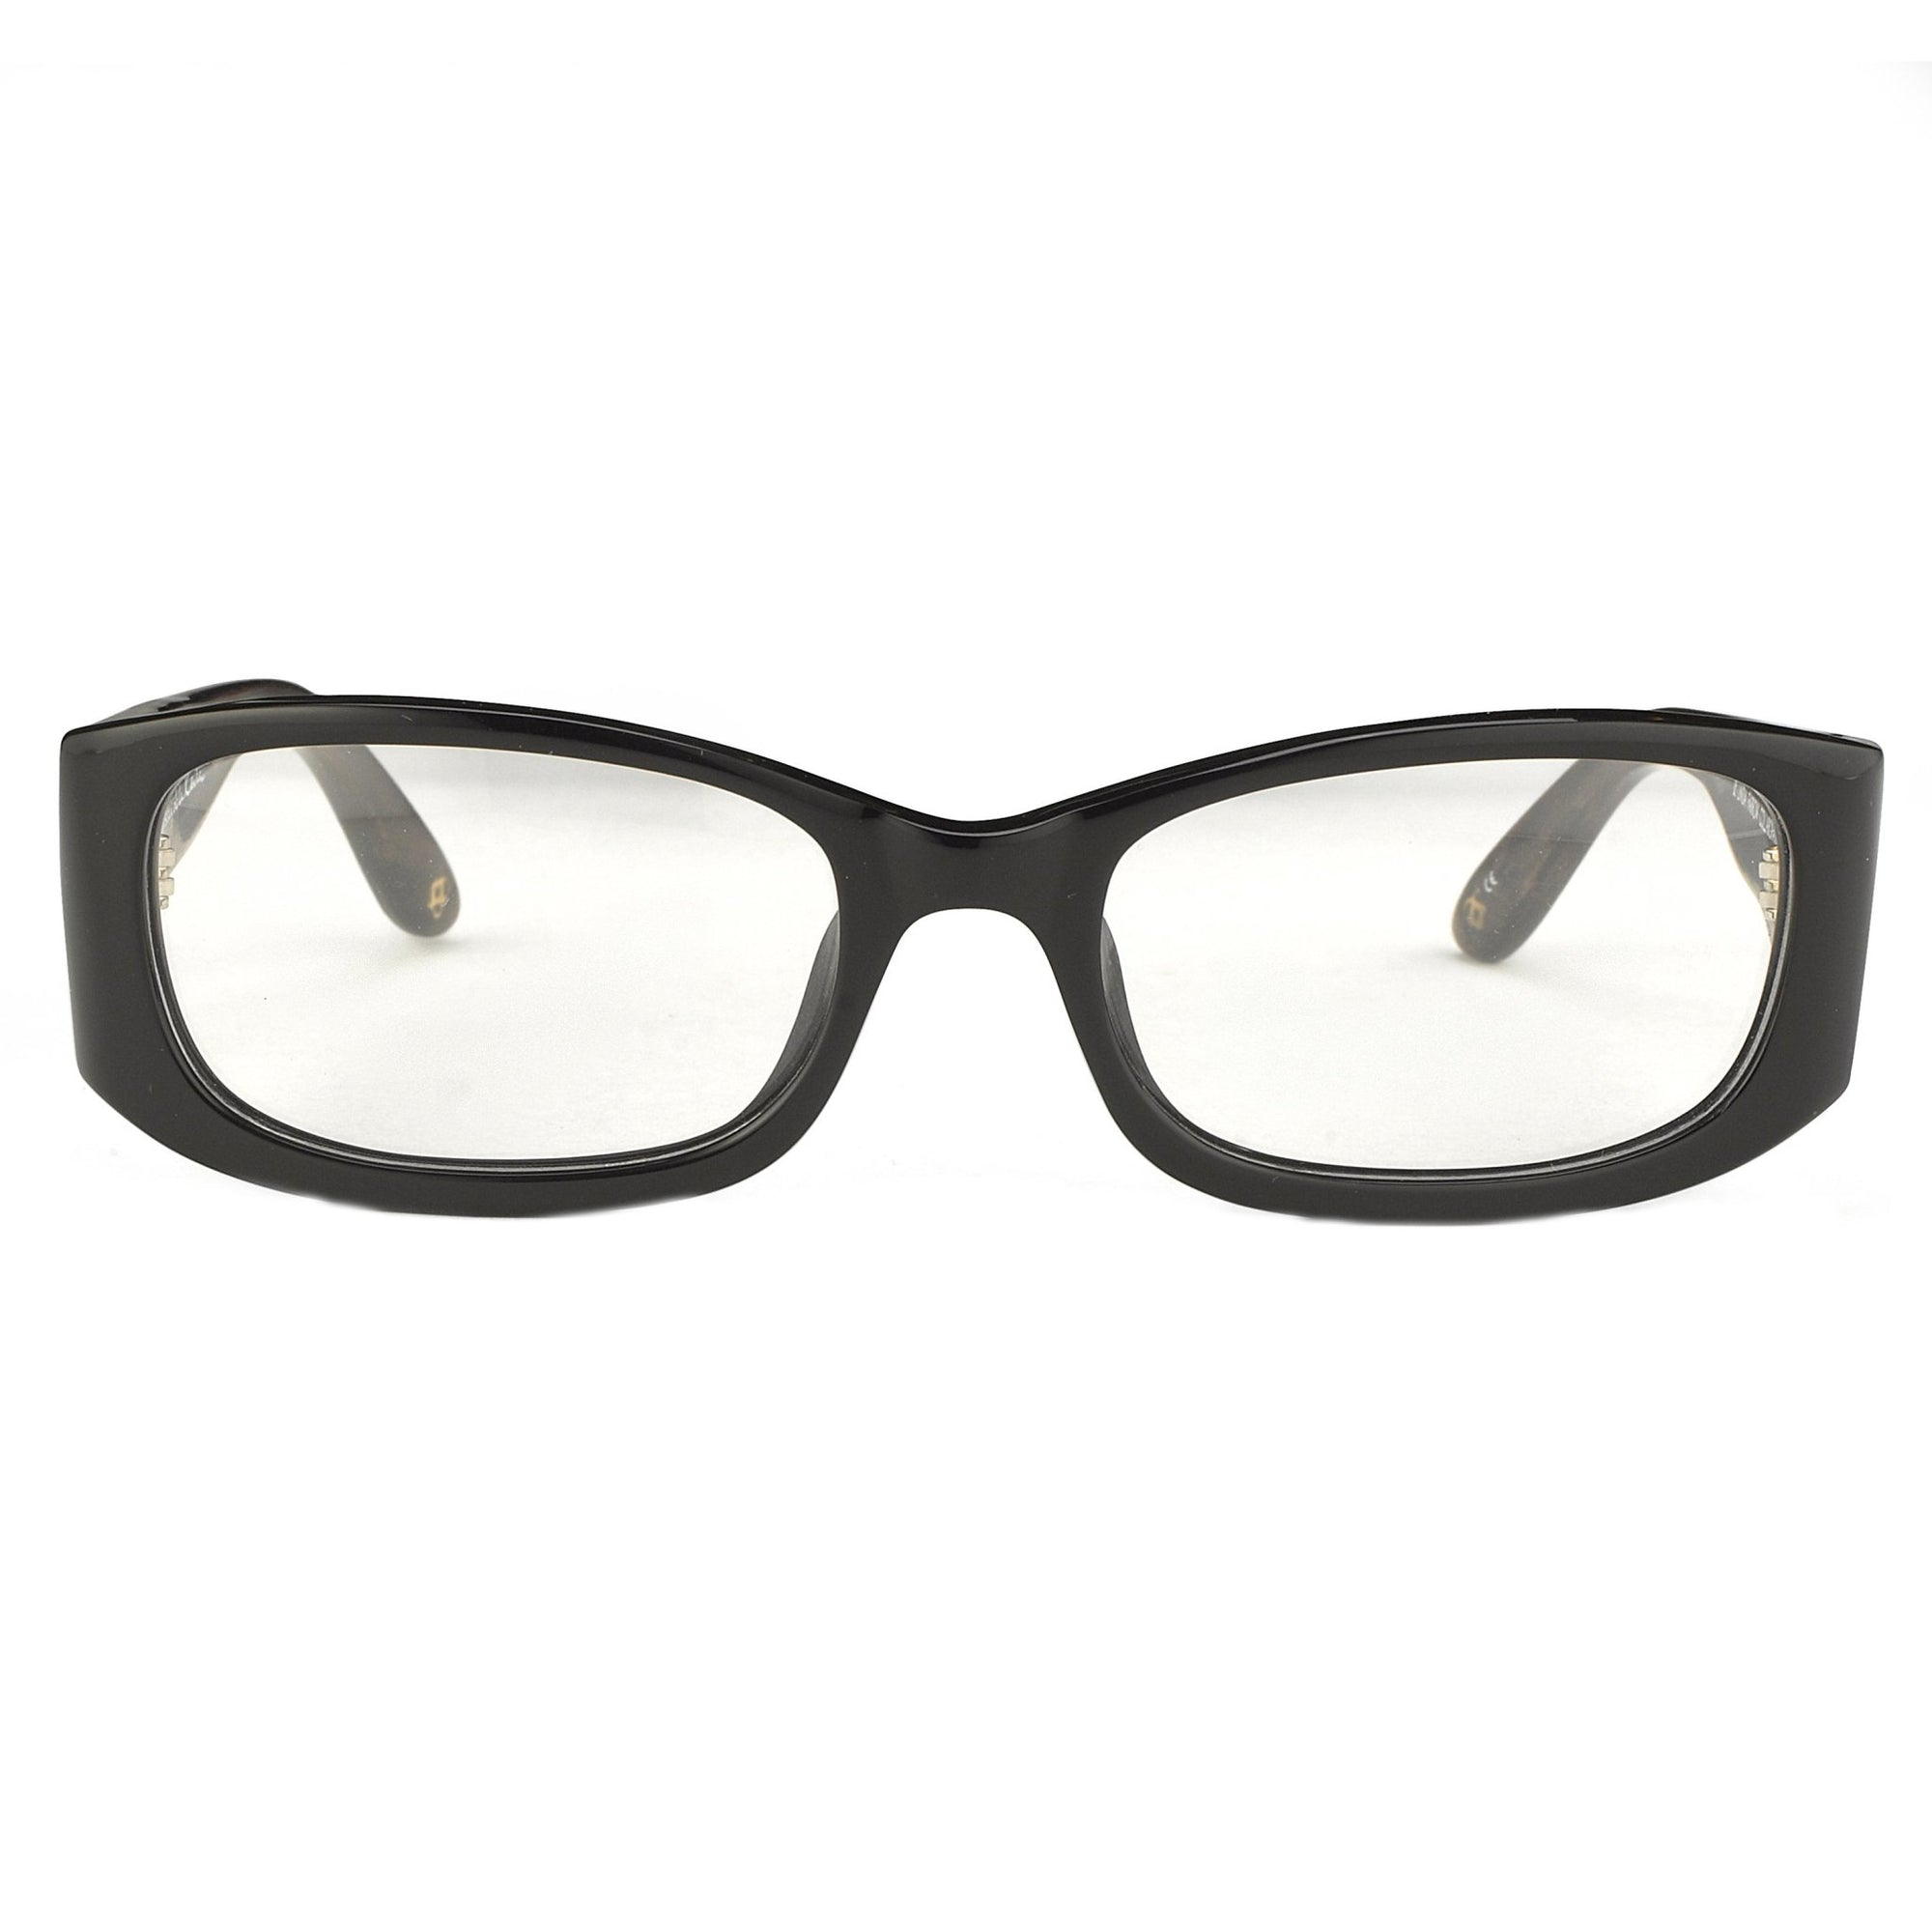 Oscar De La Renta Unisex Eyeglasses Rectangle Black Sandalwood with Clear Lenses - ODLR42C1OPT - Watches & Crystals